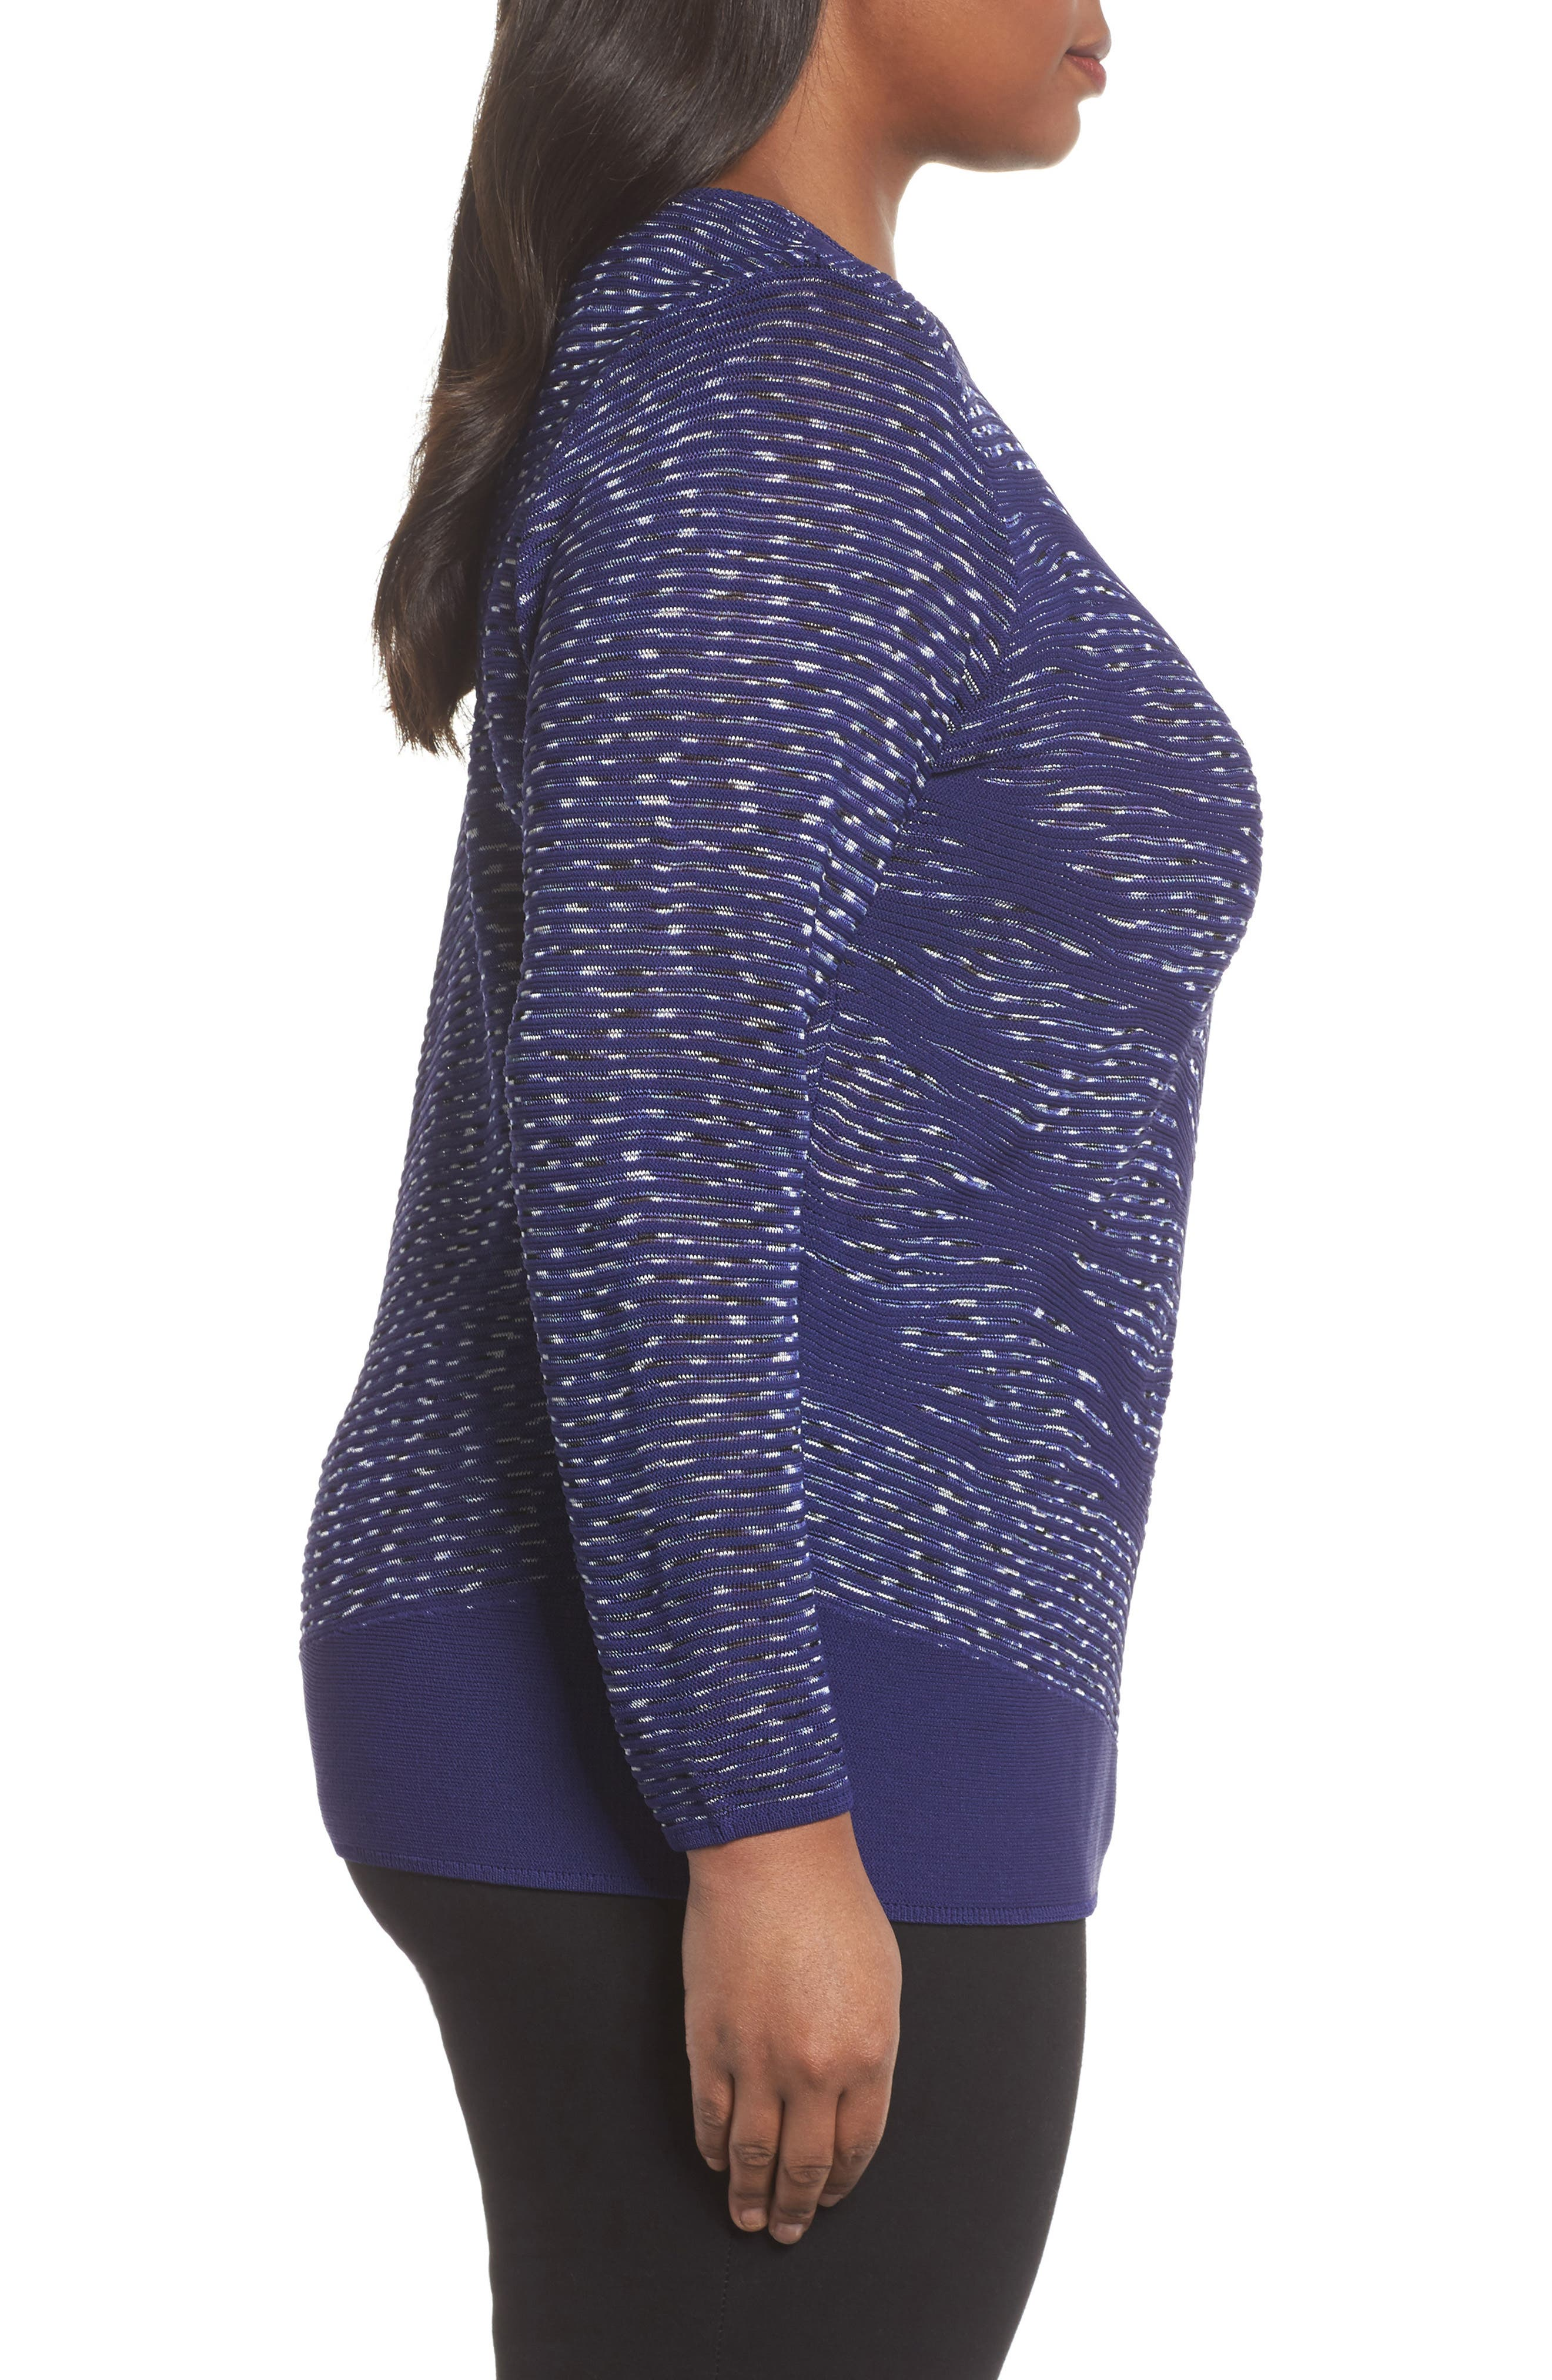 This Is Living Knit Top,                             Alternate thumbnail 3, color,                             ELECTRIC BLUE